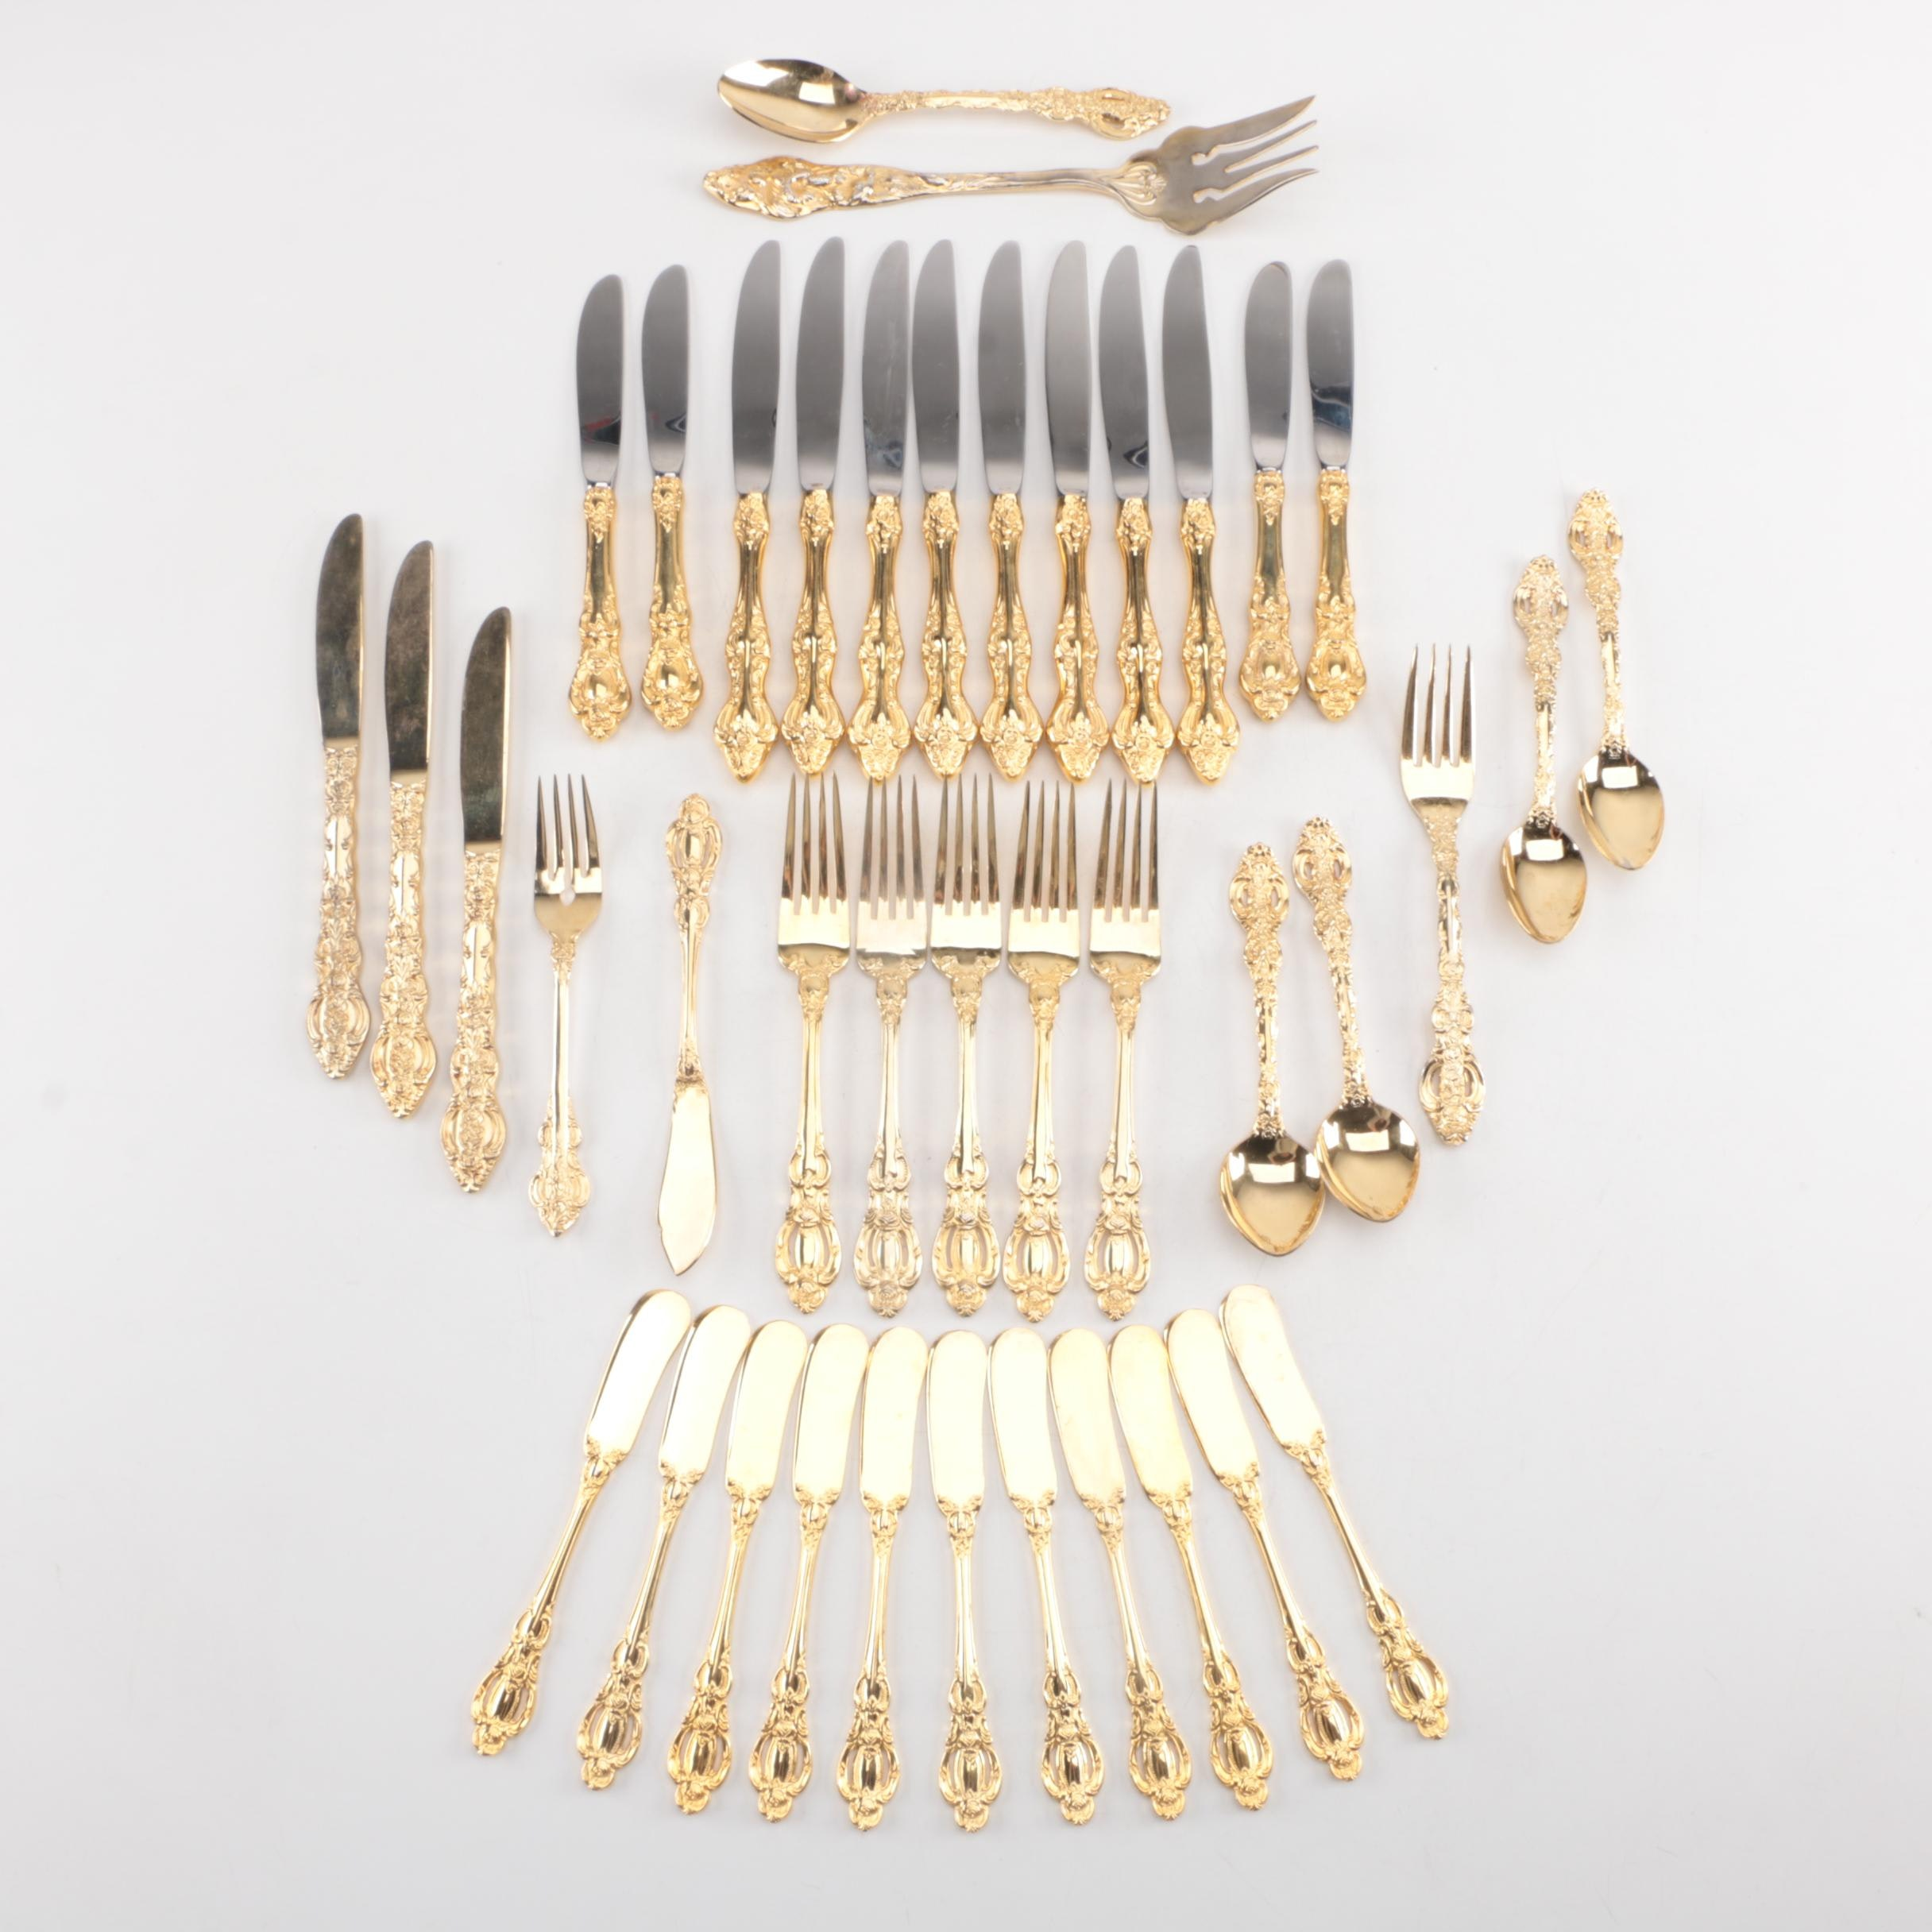 Gold Electroplated and Stainless Flatware Featuring Georgian House